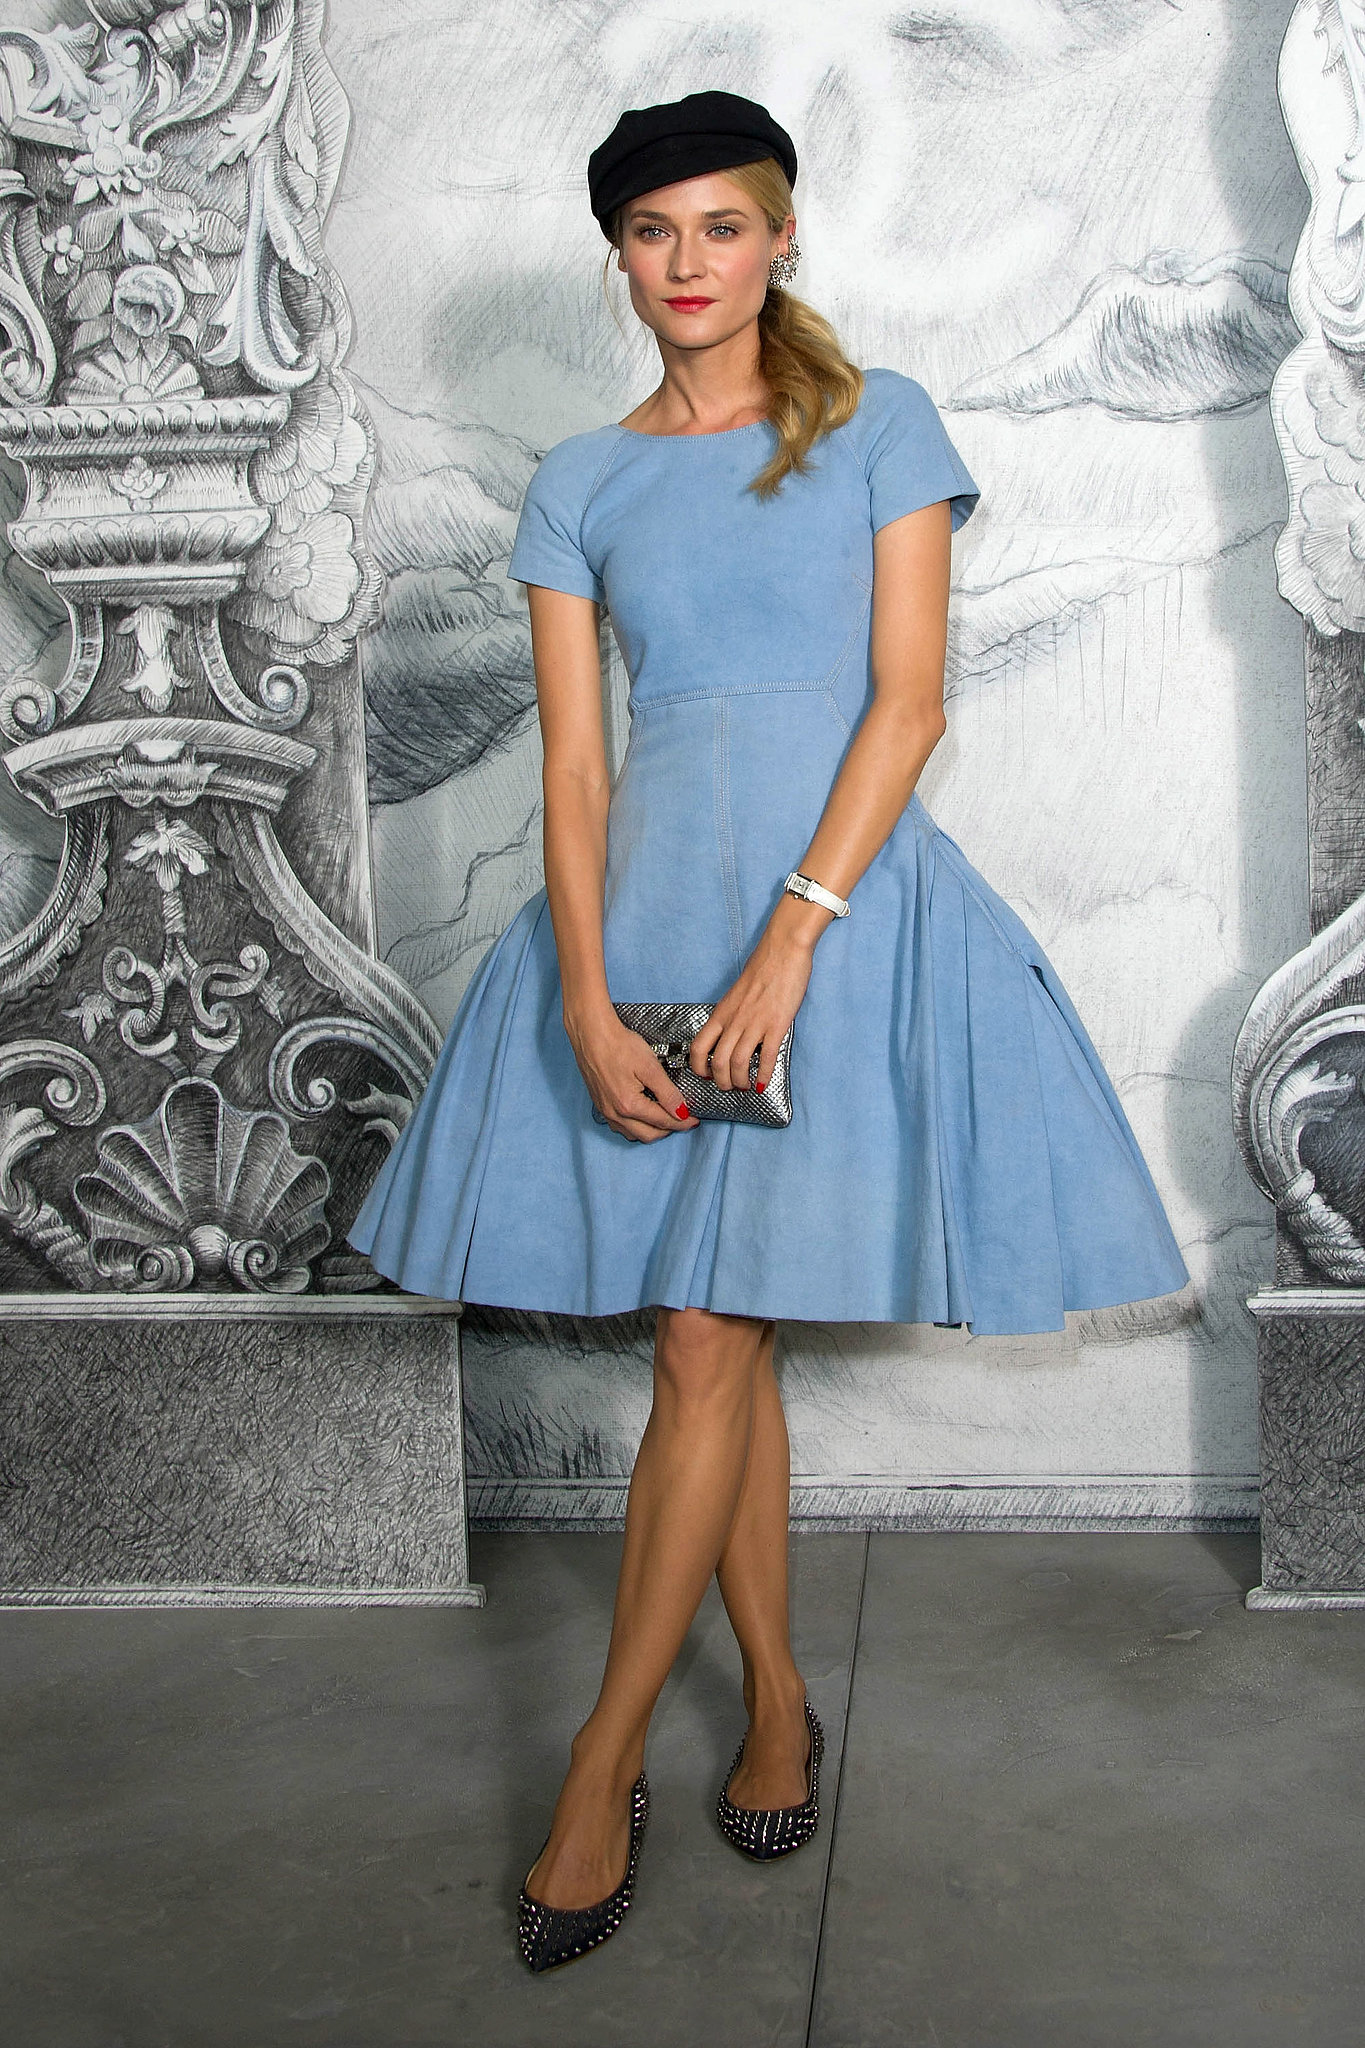 Diane went for classic Parisian chic in a blue Chanel Resort '13 dress, spiked Christian Louboutin flats, and a black newsboy cap for the Chanel Haute Couture show in July.